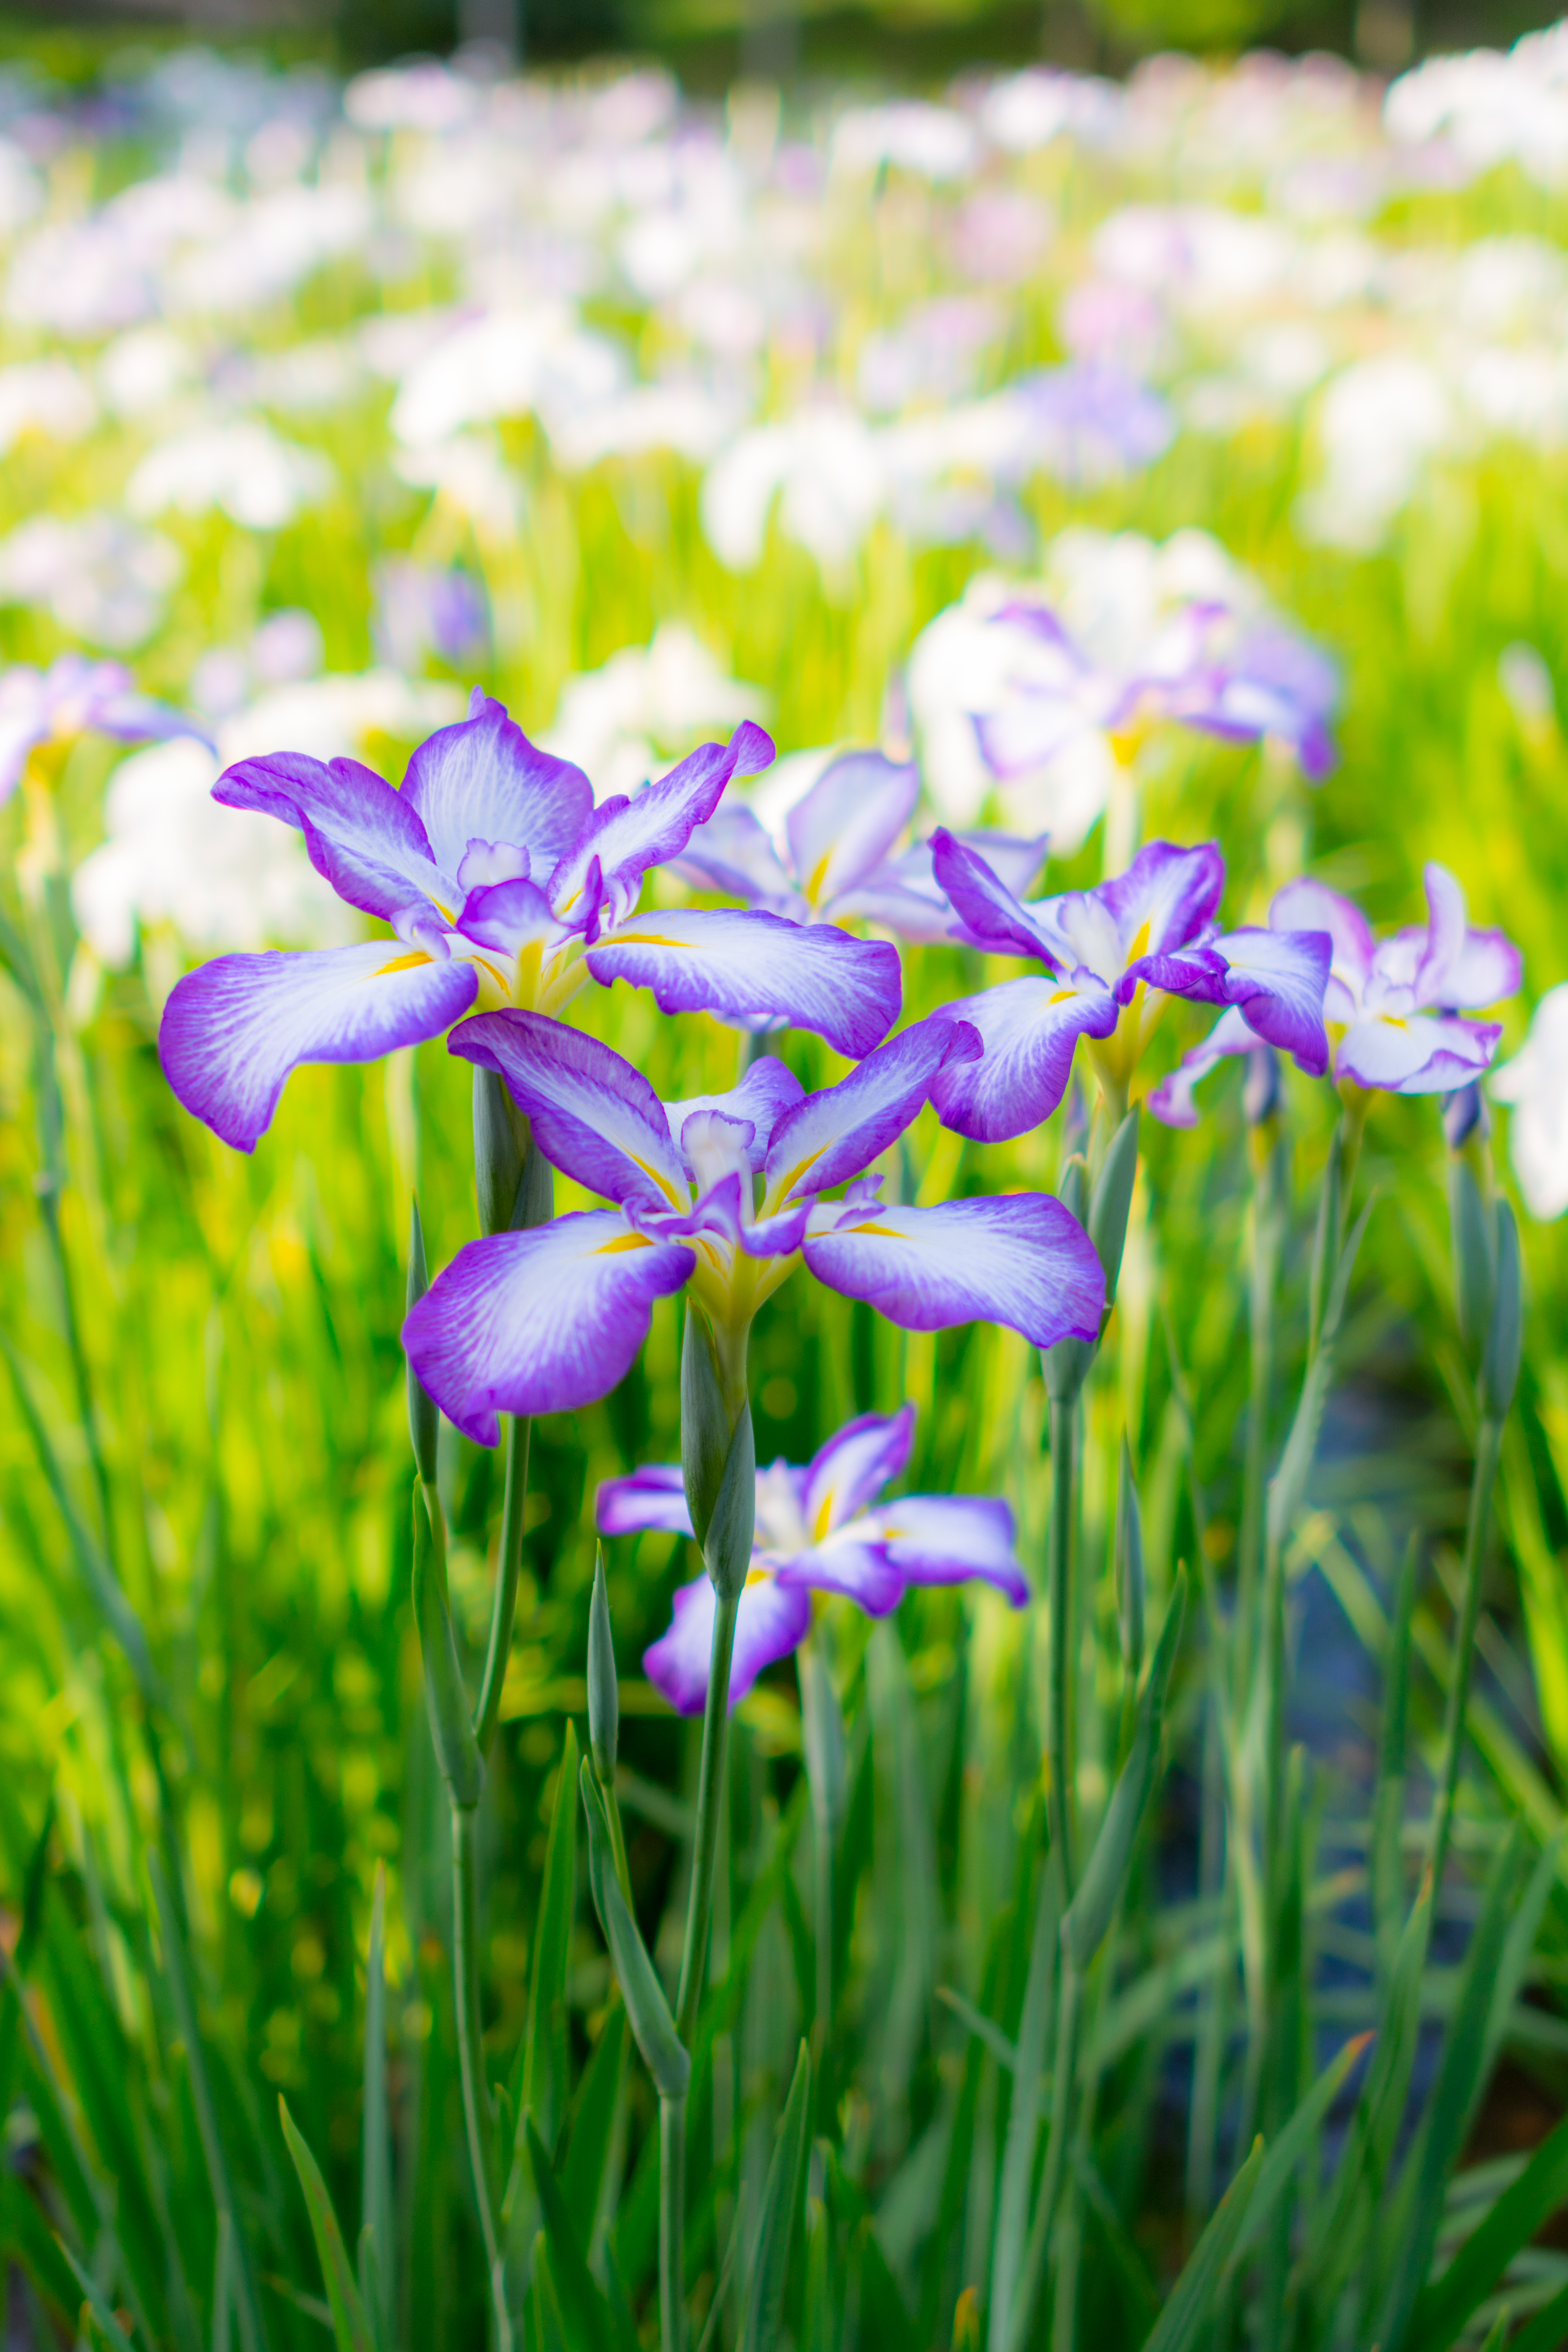 121586 Screensavers and Wallpapers Flower Bed for phone. Download Flowers, Summer, Bloom, Flowering, Flower Bed, Flowerbed, Irises pictures for free